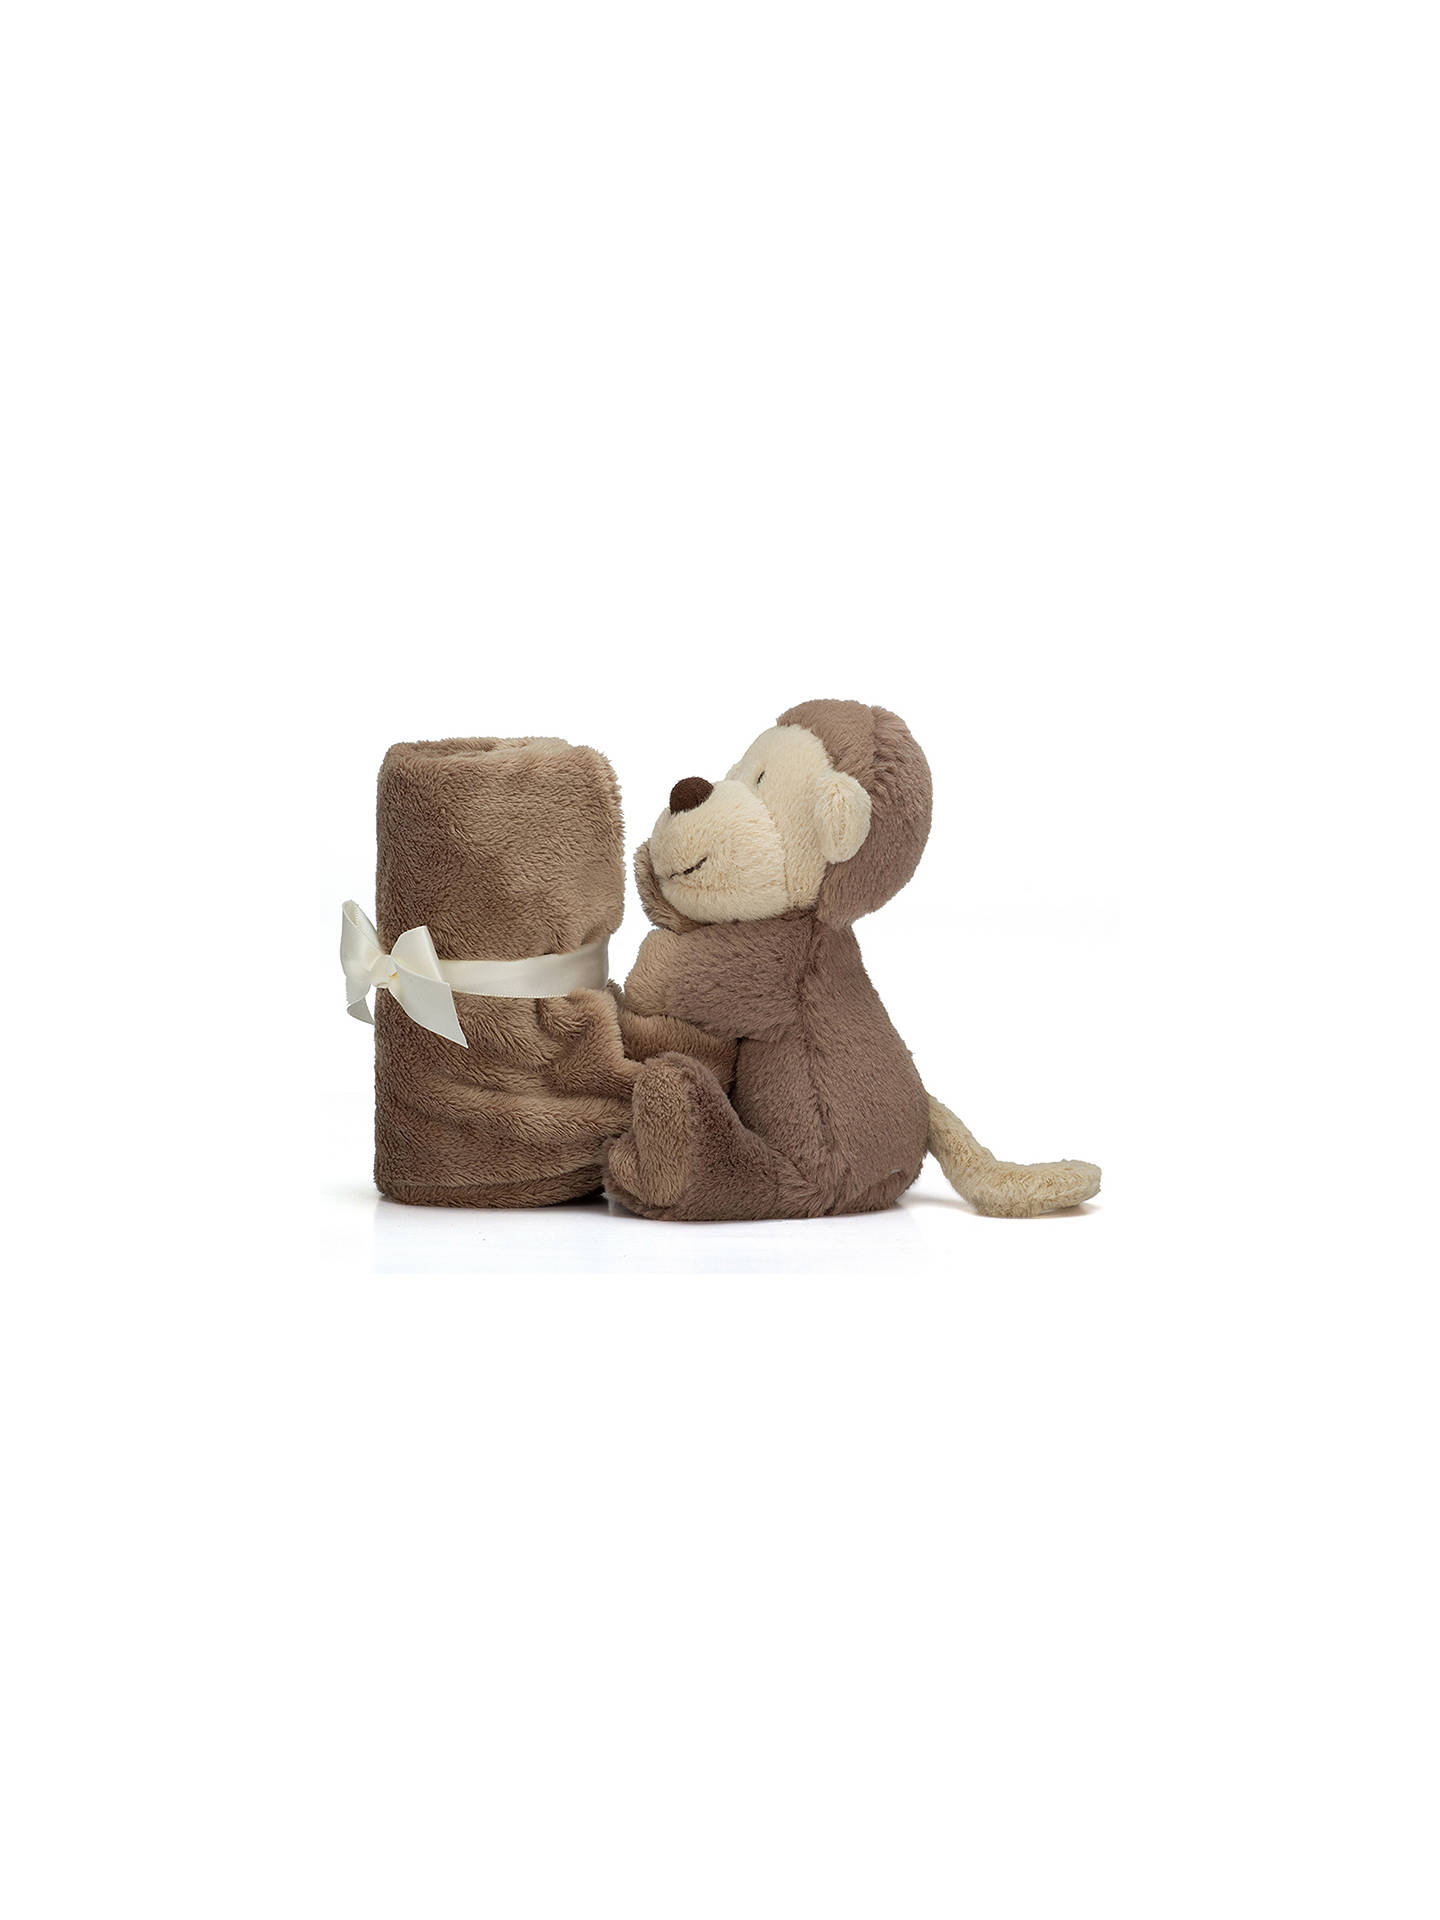 BuyJellycat Bashful Monkey Baby Soother Soft Toy Online at johnlewis.com